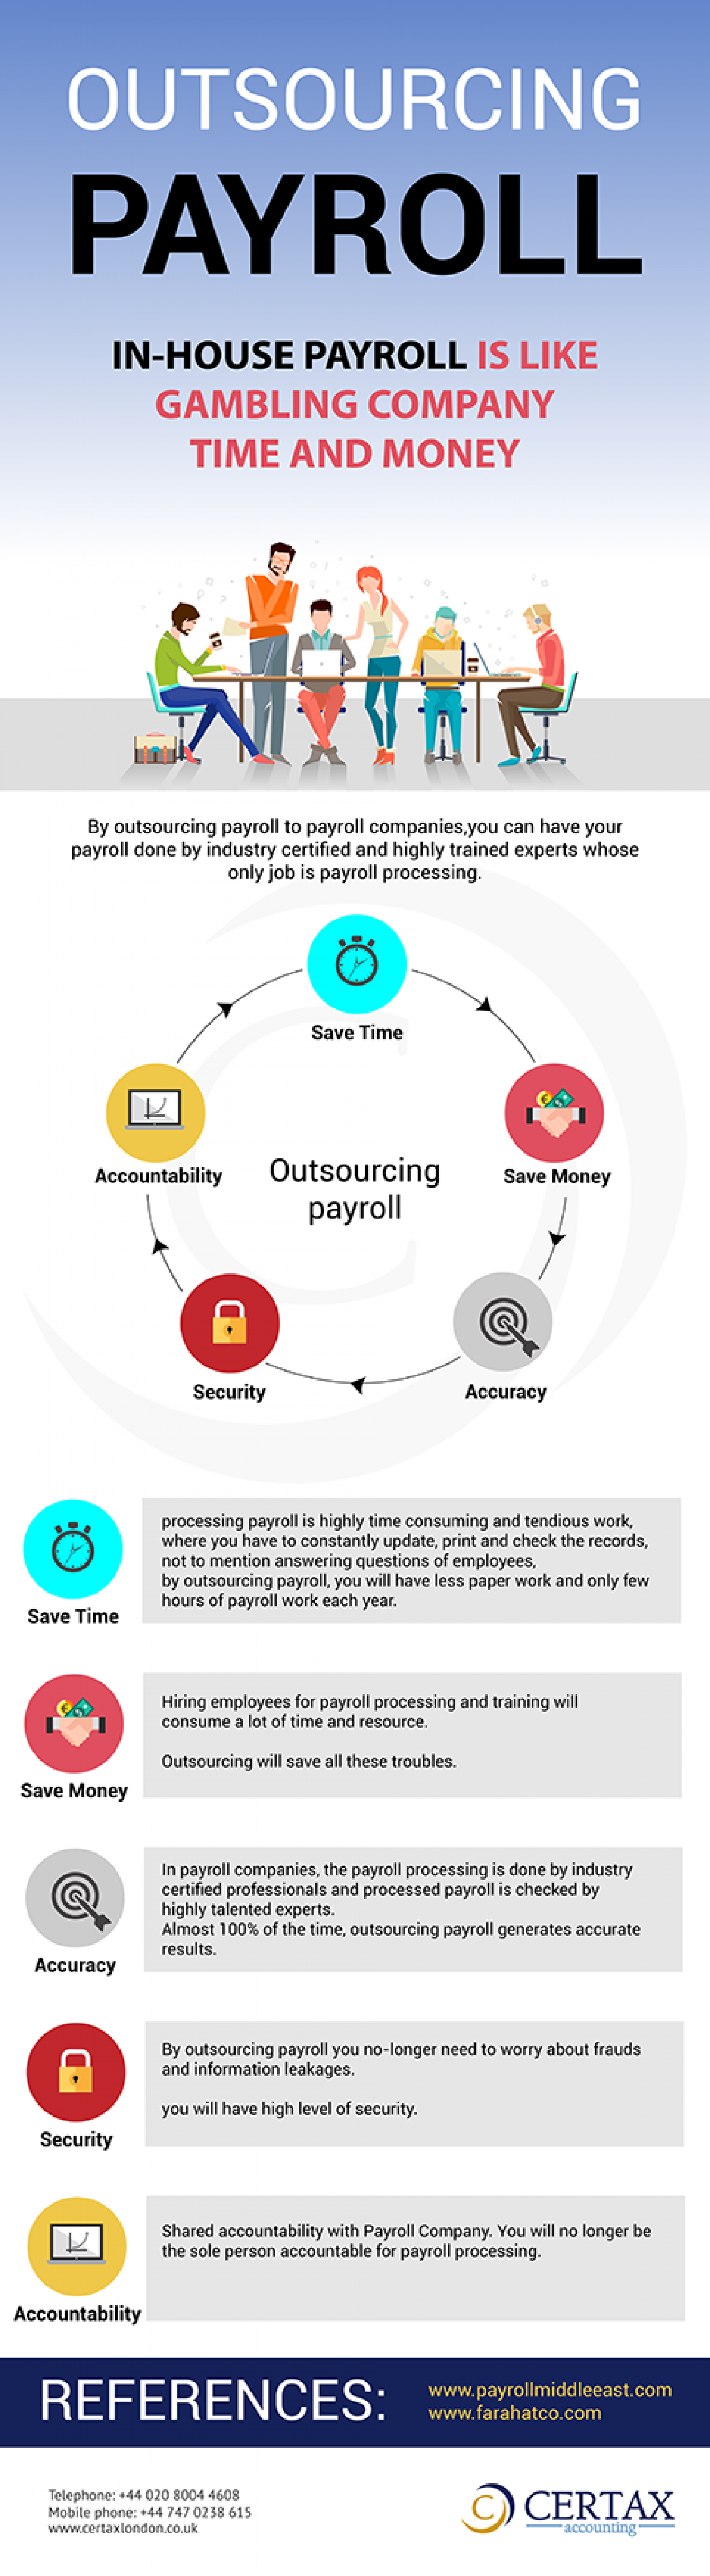 Outsourcing Payroll Services Infographic